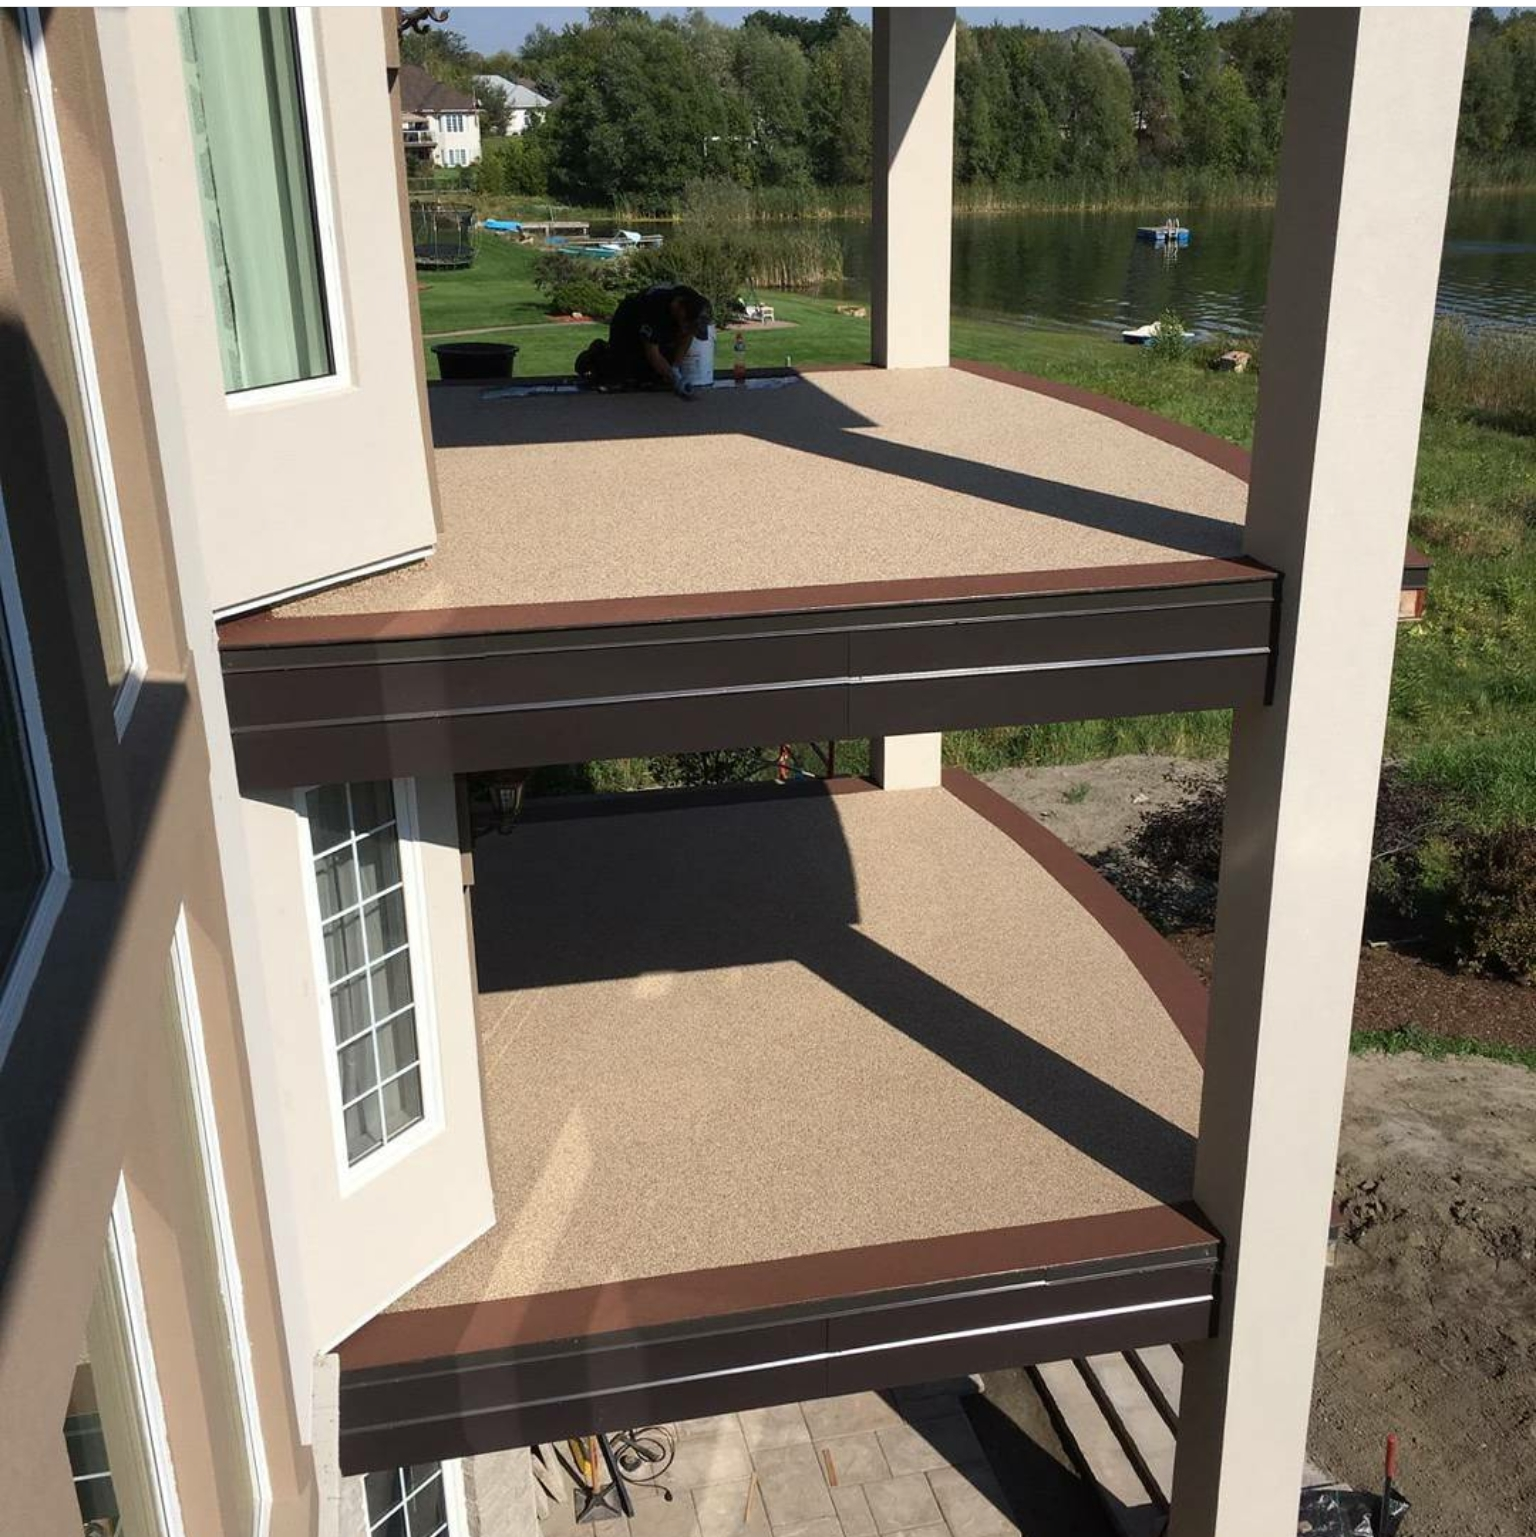 Soft Crete Rubber Surfacing On Balcony